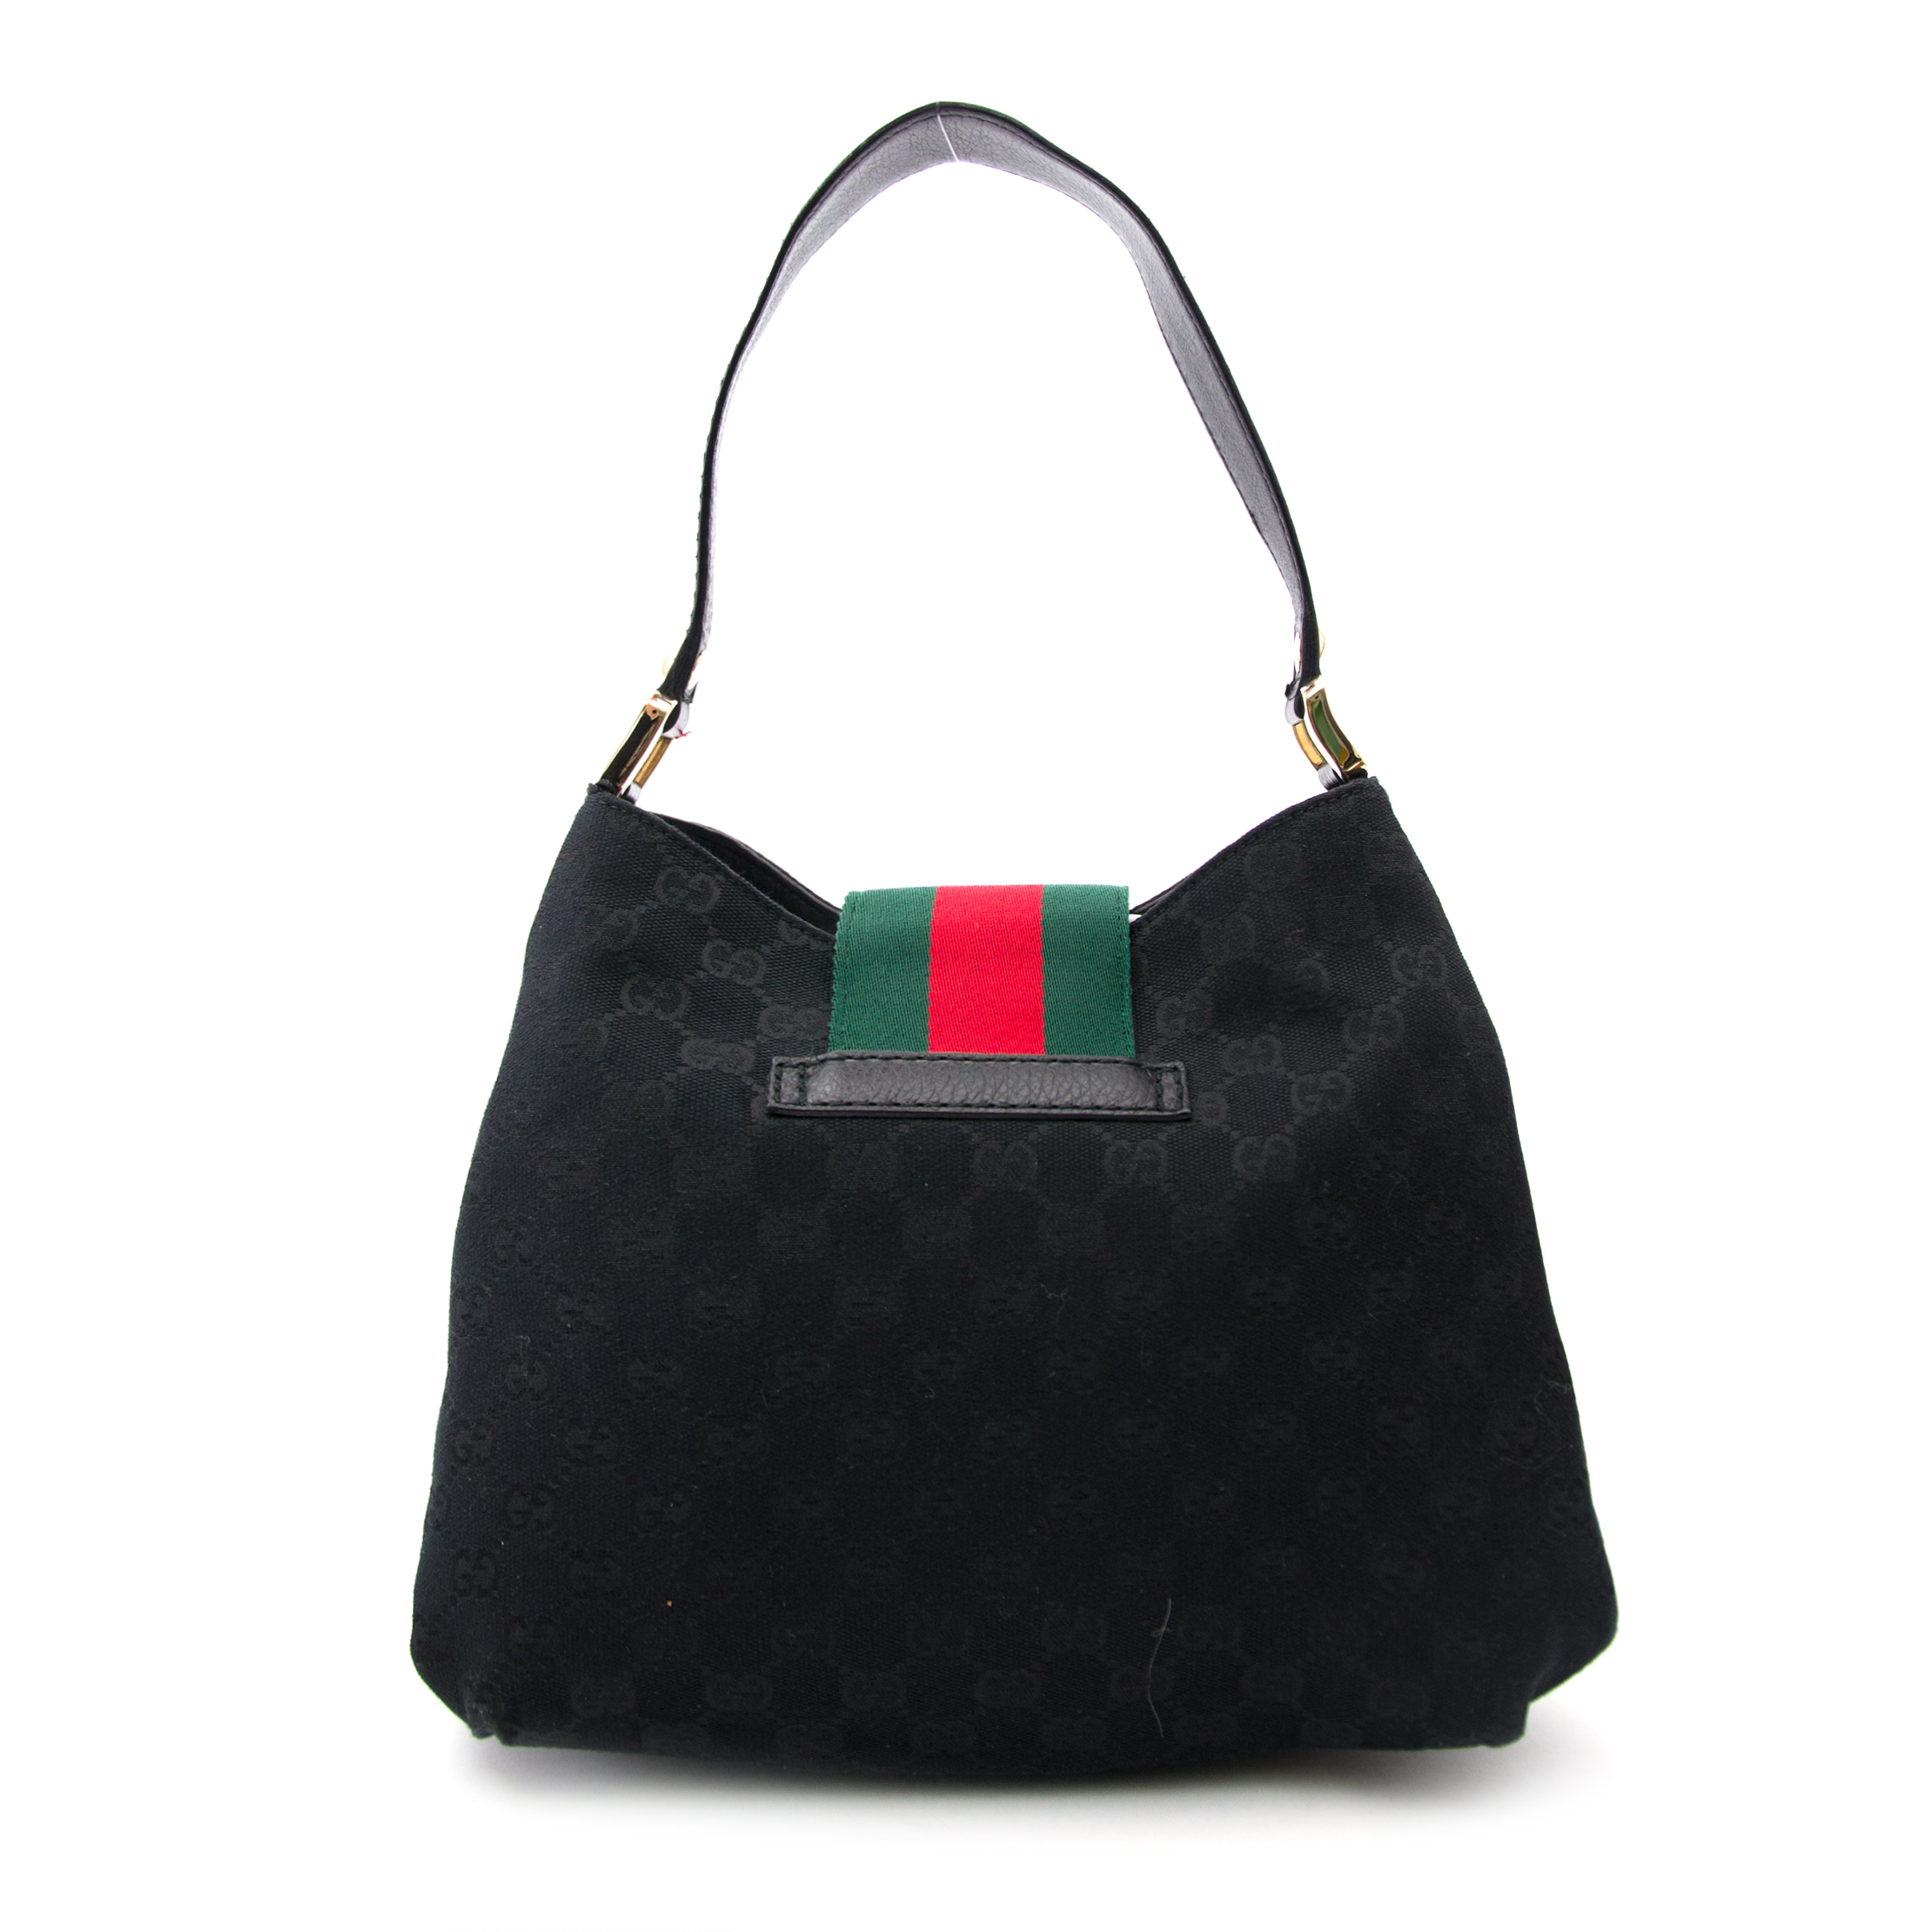 82c126c7c82255 Labellov Buy authentic vintagePrada designer bags, shoes, clothes ...